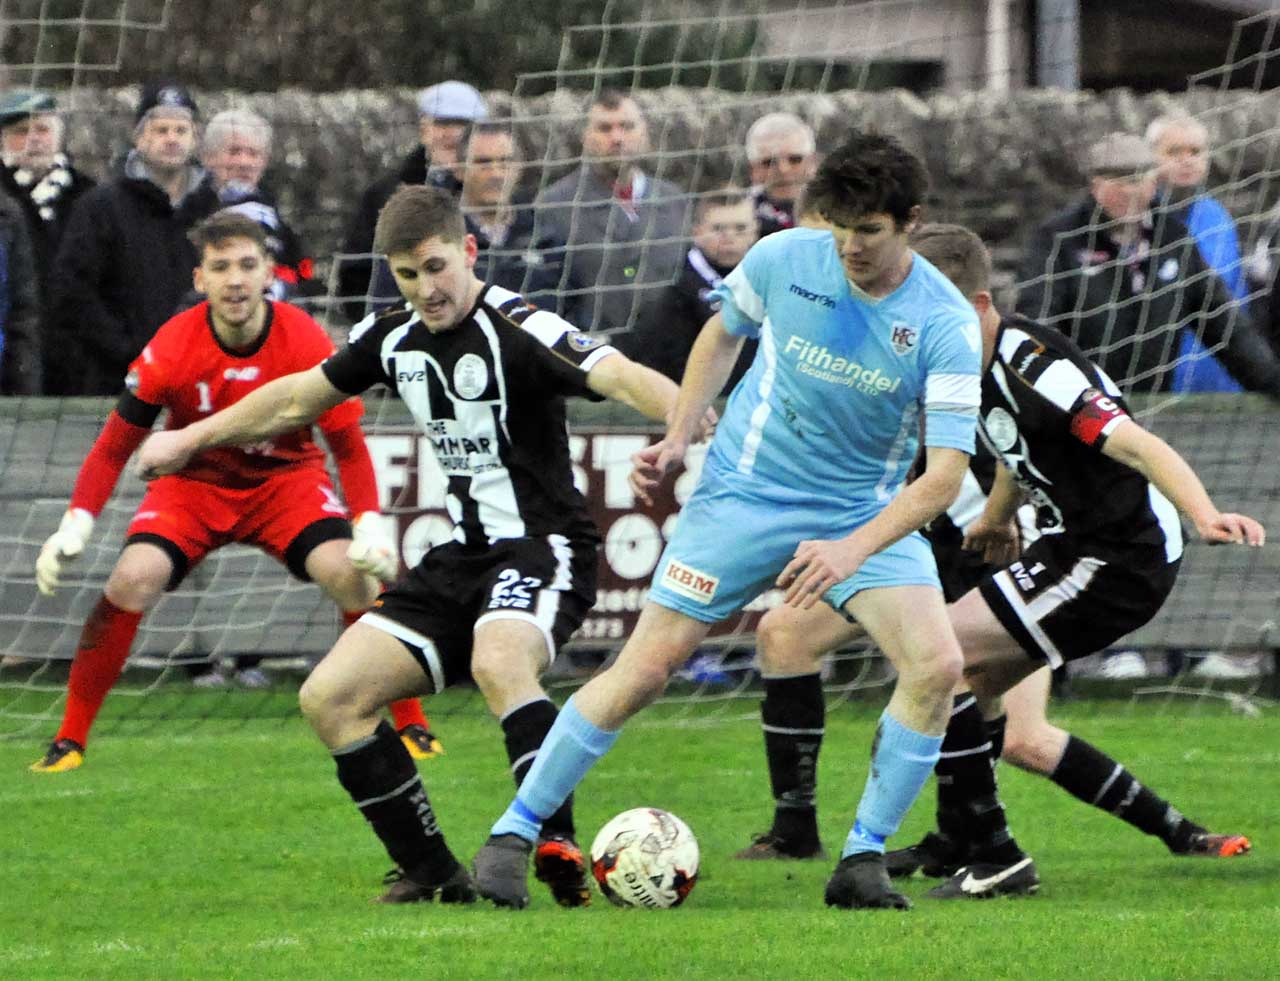 Photo: Wick Academy 3 Keith 1